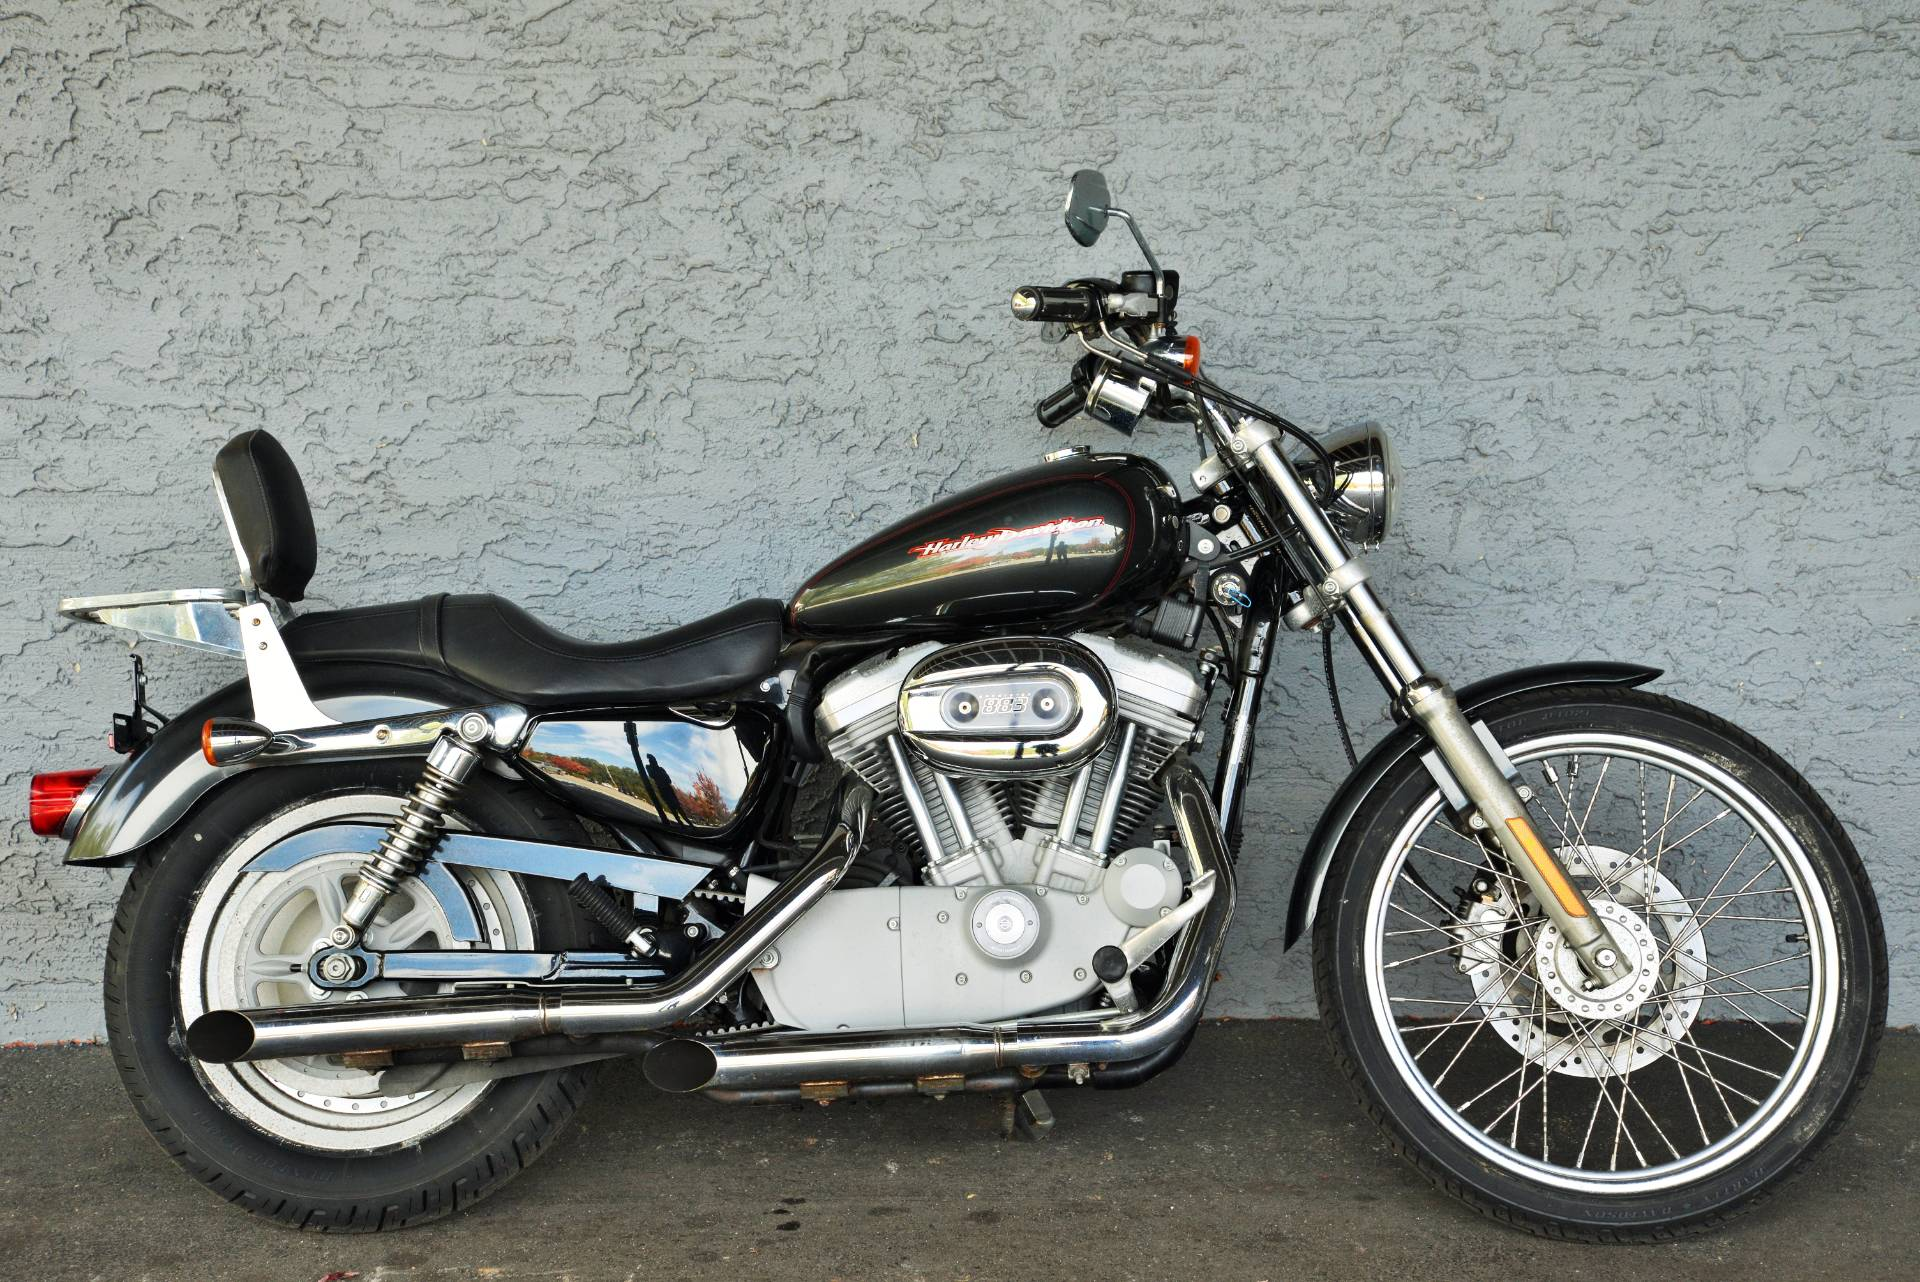 Used Motorcycles Nj >> 2006 Harley Davidson Sportster Custom In Lakewood New Jersey